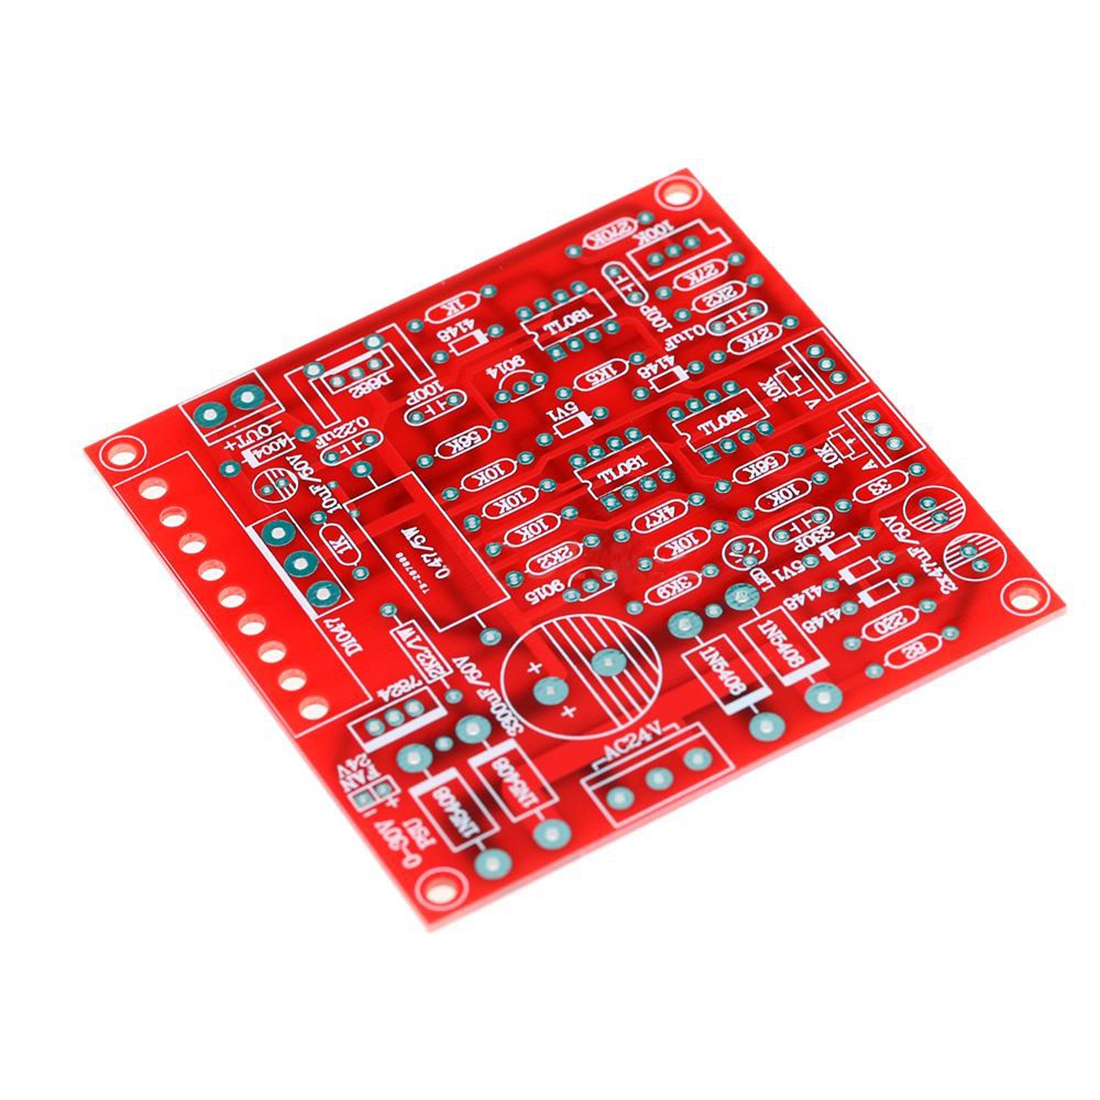 Adjustable Dc Regulated Power Supply Diy Kit Short Circuit Adjustablecurrentlimitandoutputvoltage Powersupplycircuit High Quality Whose Output Voltage Is Continuously From 0 To 30v Including A Limit Current Which